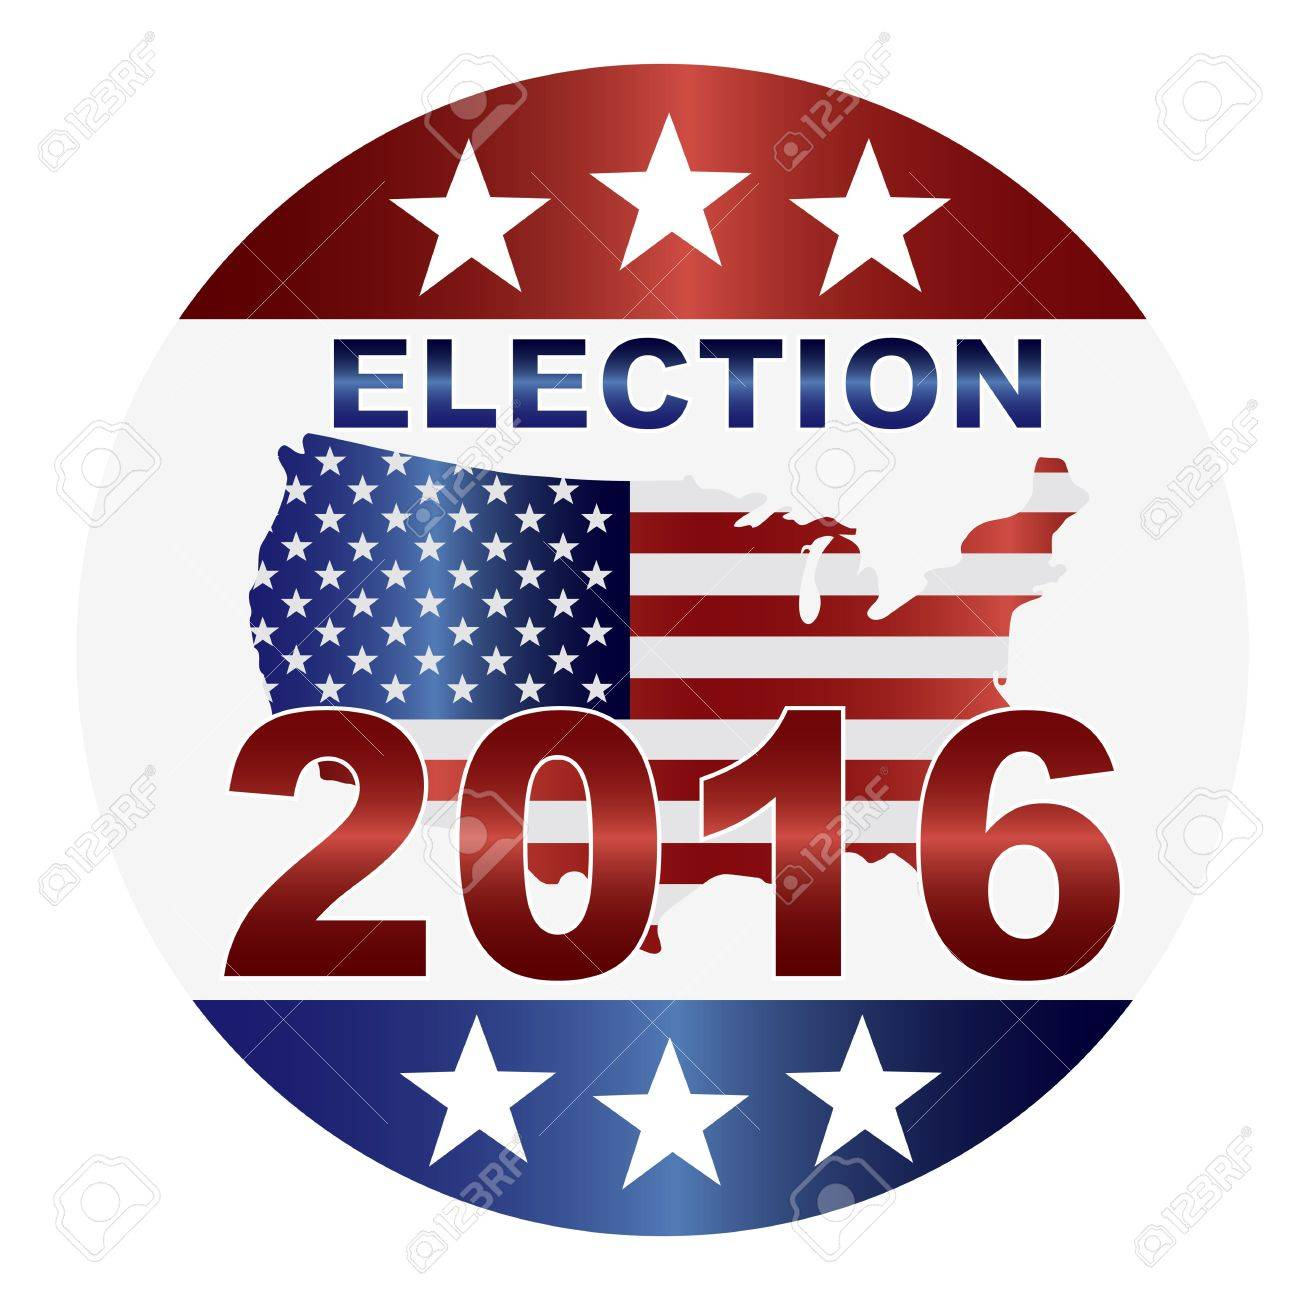 Election 2016 with USA Flag in Map Silhouette Illustration Stock Vector - 19380689